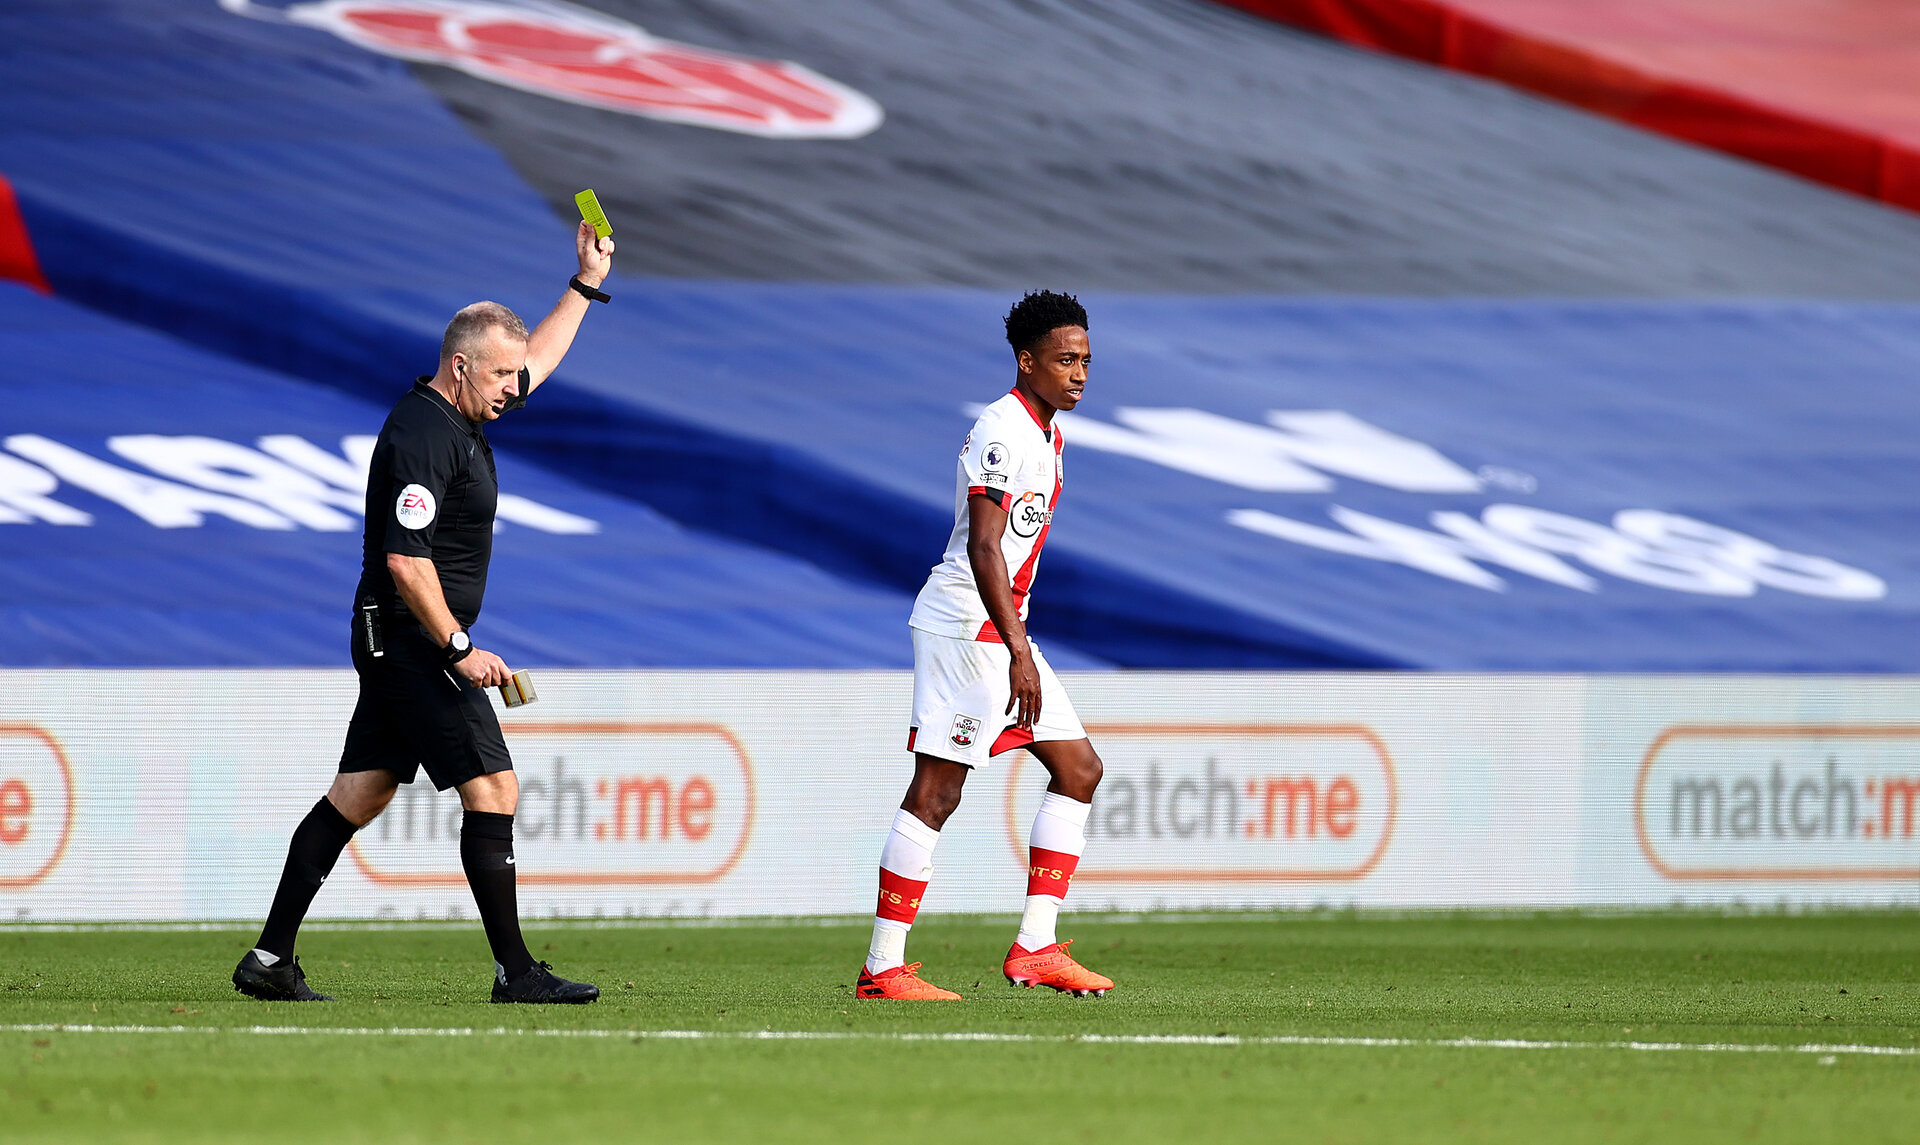 LONDON, ENGLAND - SEPTEMBER 12: Kyle Walker-Peters of Southampton is shown a yellow card during the Premier League match between Crystal Palace and Southampton at Selhurst Park on September 12, 2020 in London, United Kingdom. (Photo by Matt Watson/Southampton FC via Getty Images)